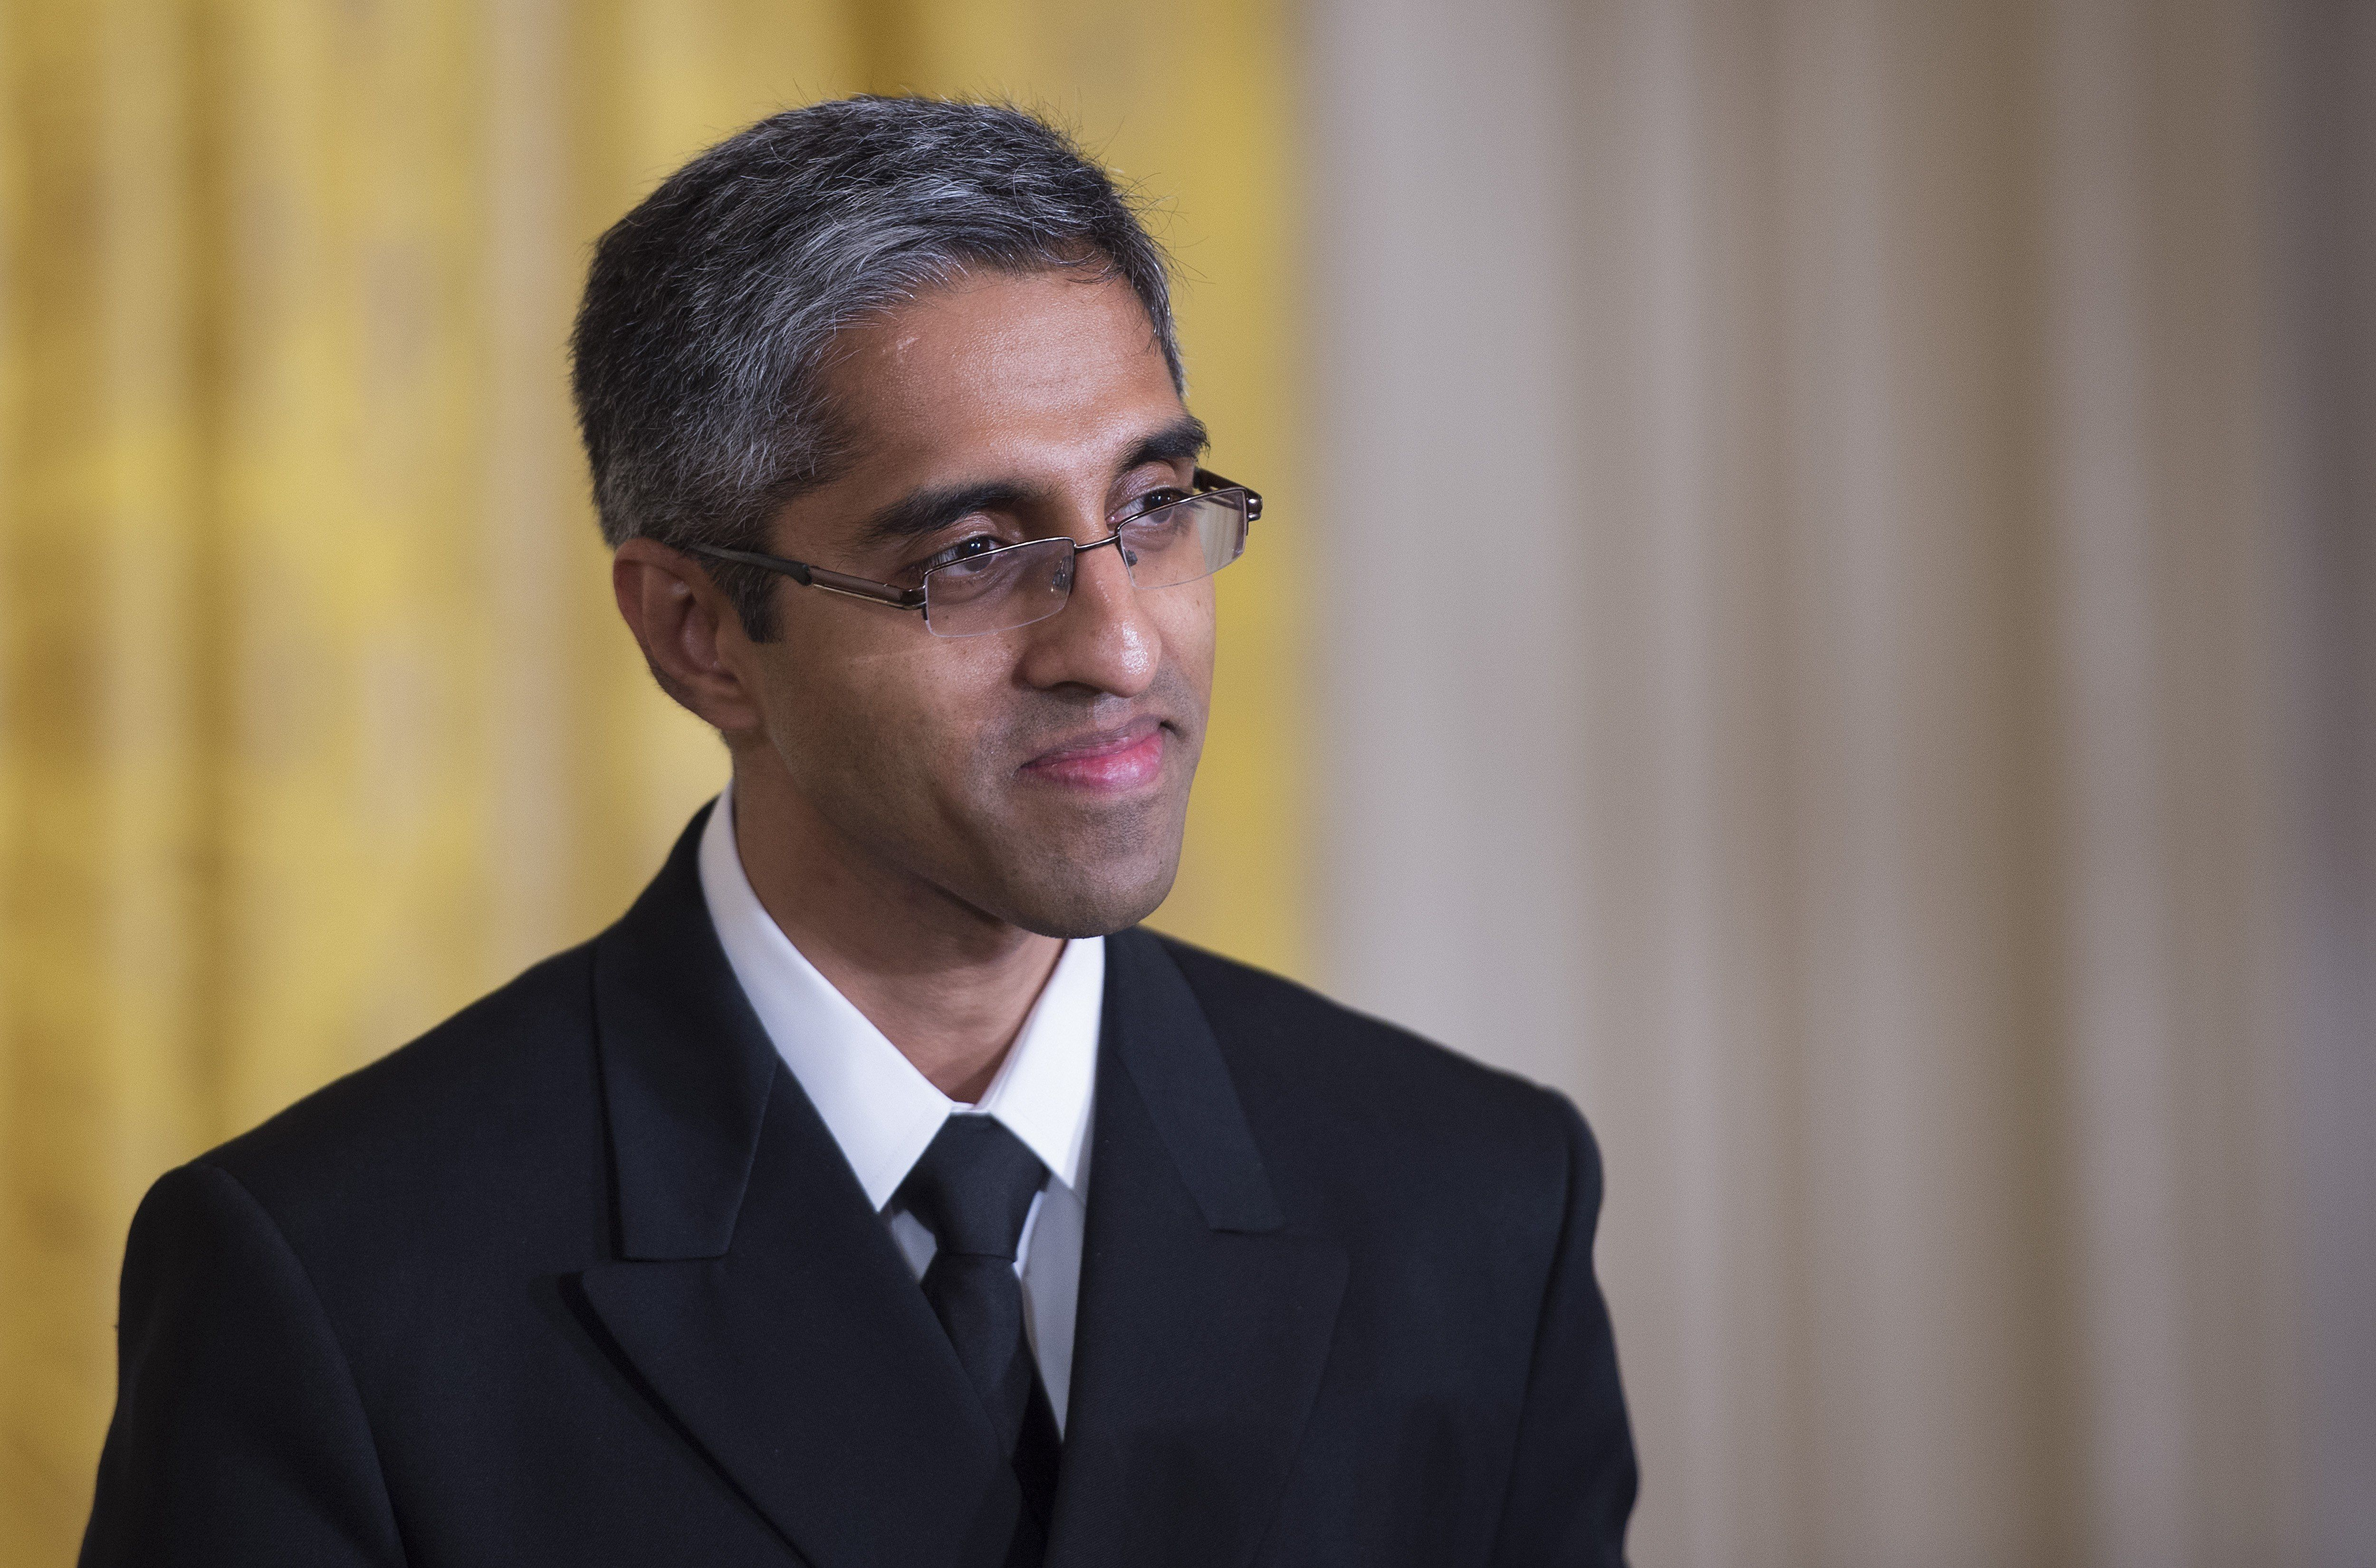 Surgeon General Vivek Murthy issued a letter to 2.3 million American health professionals Thursday, asking them to pledge com